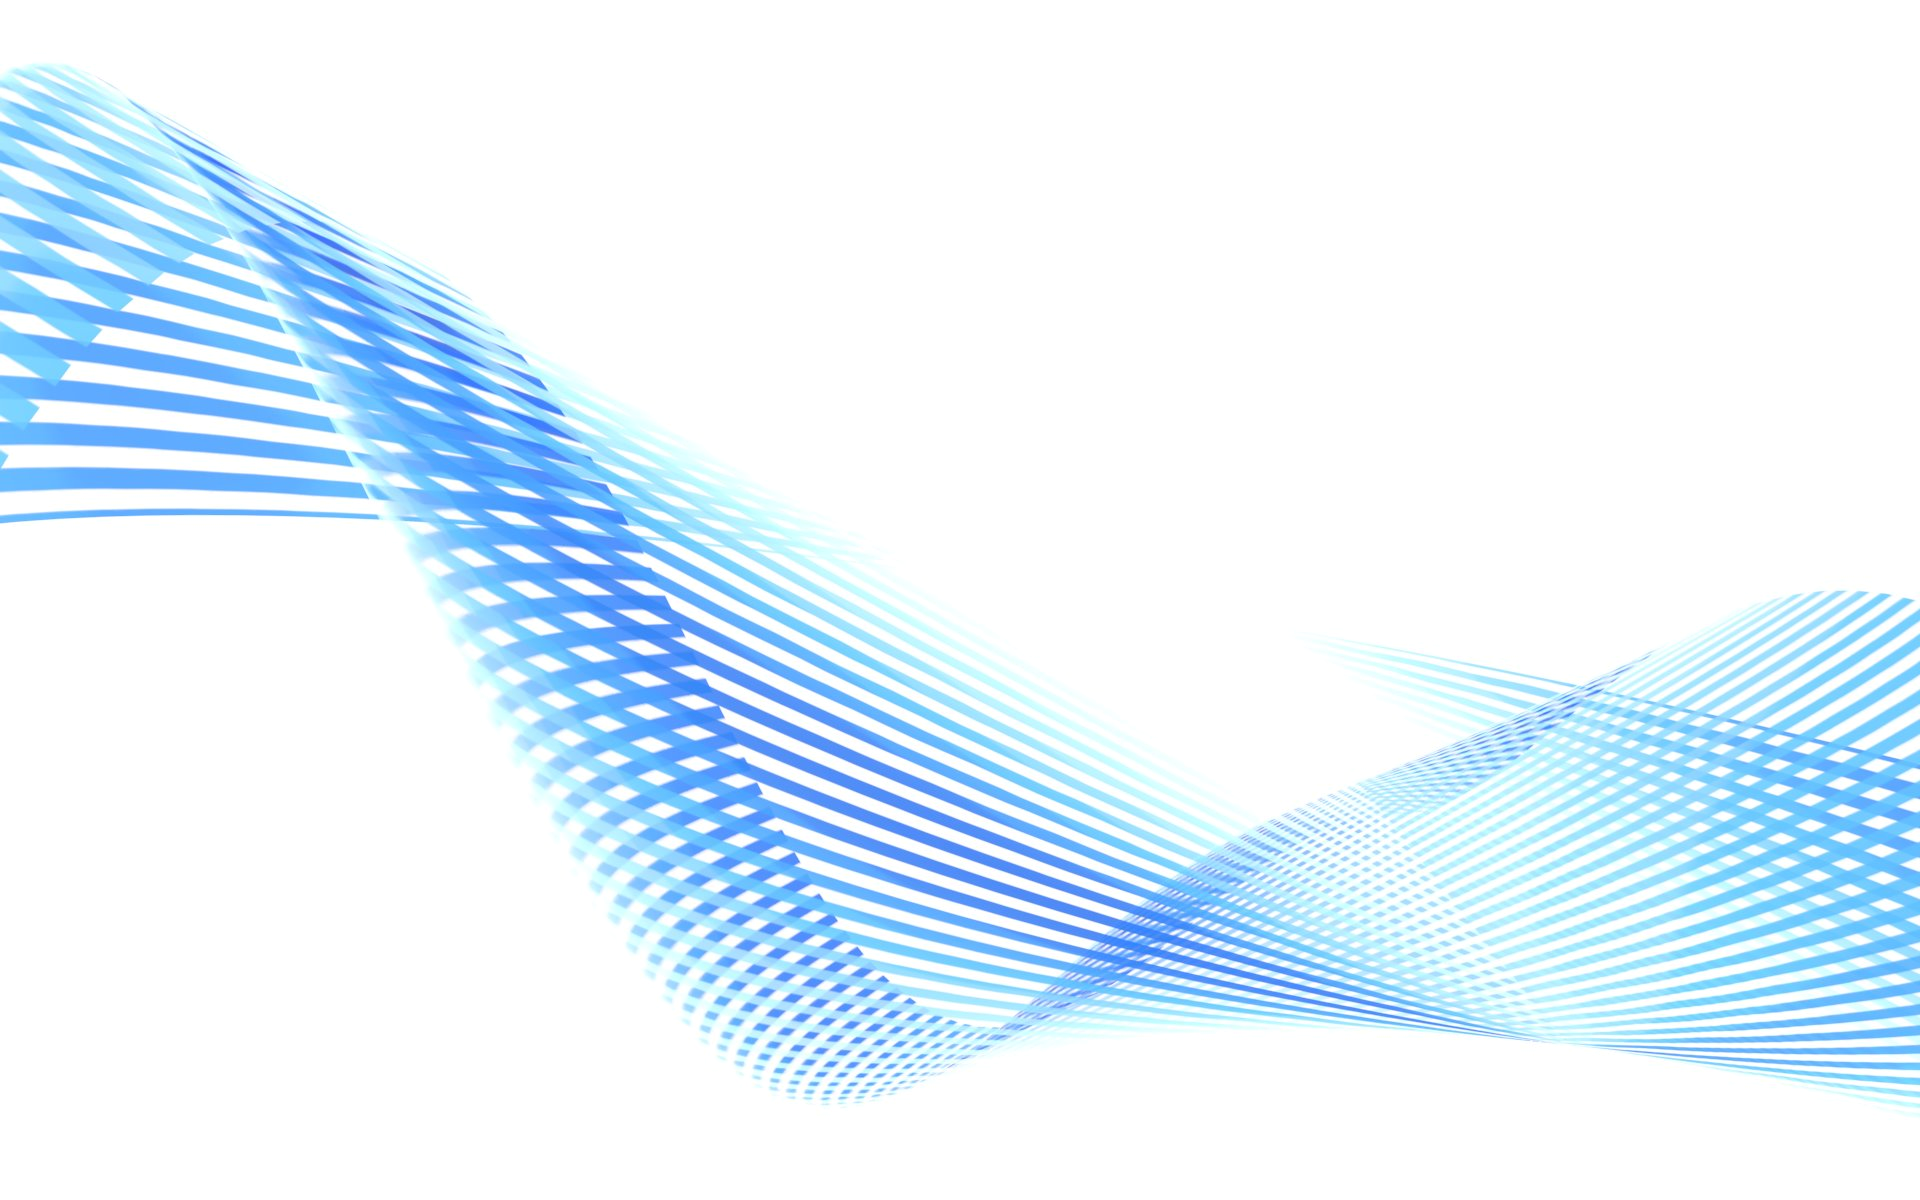 blue line wave background - photo #8